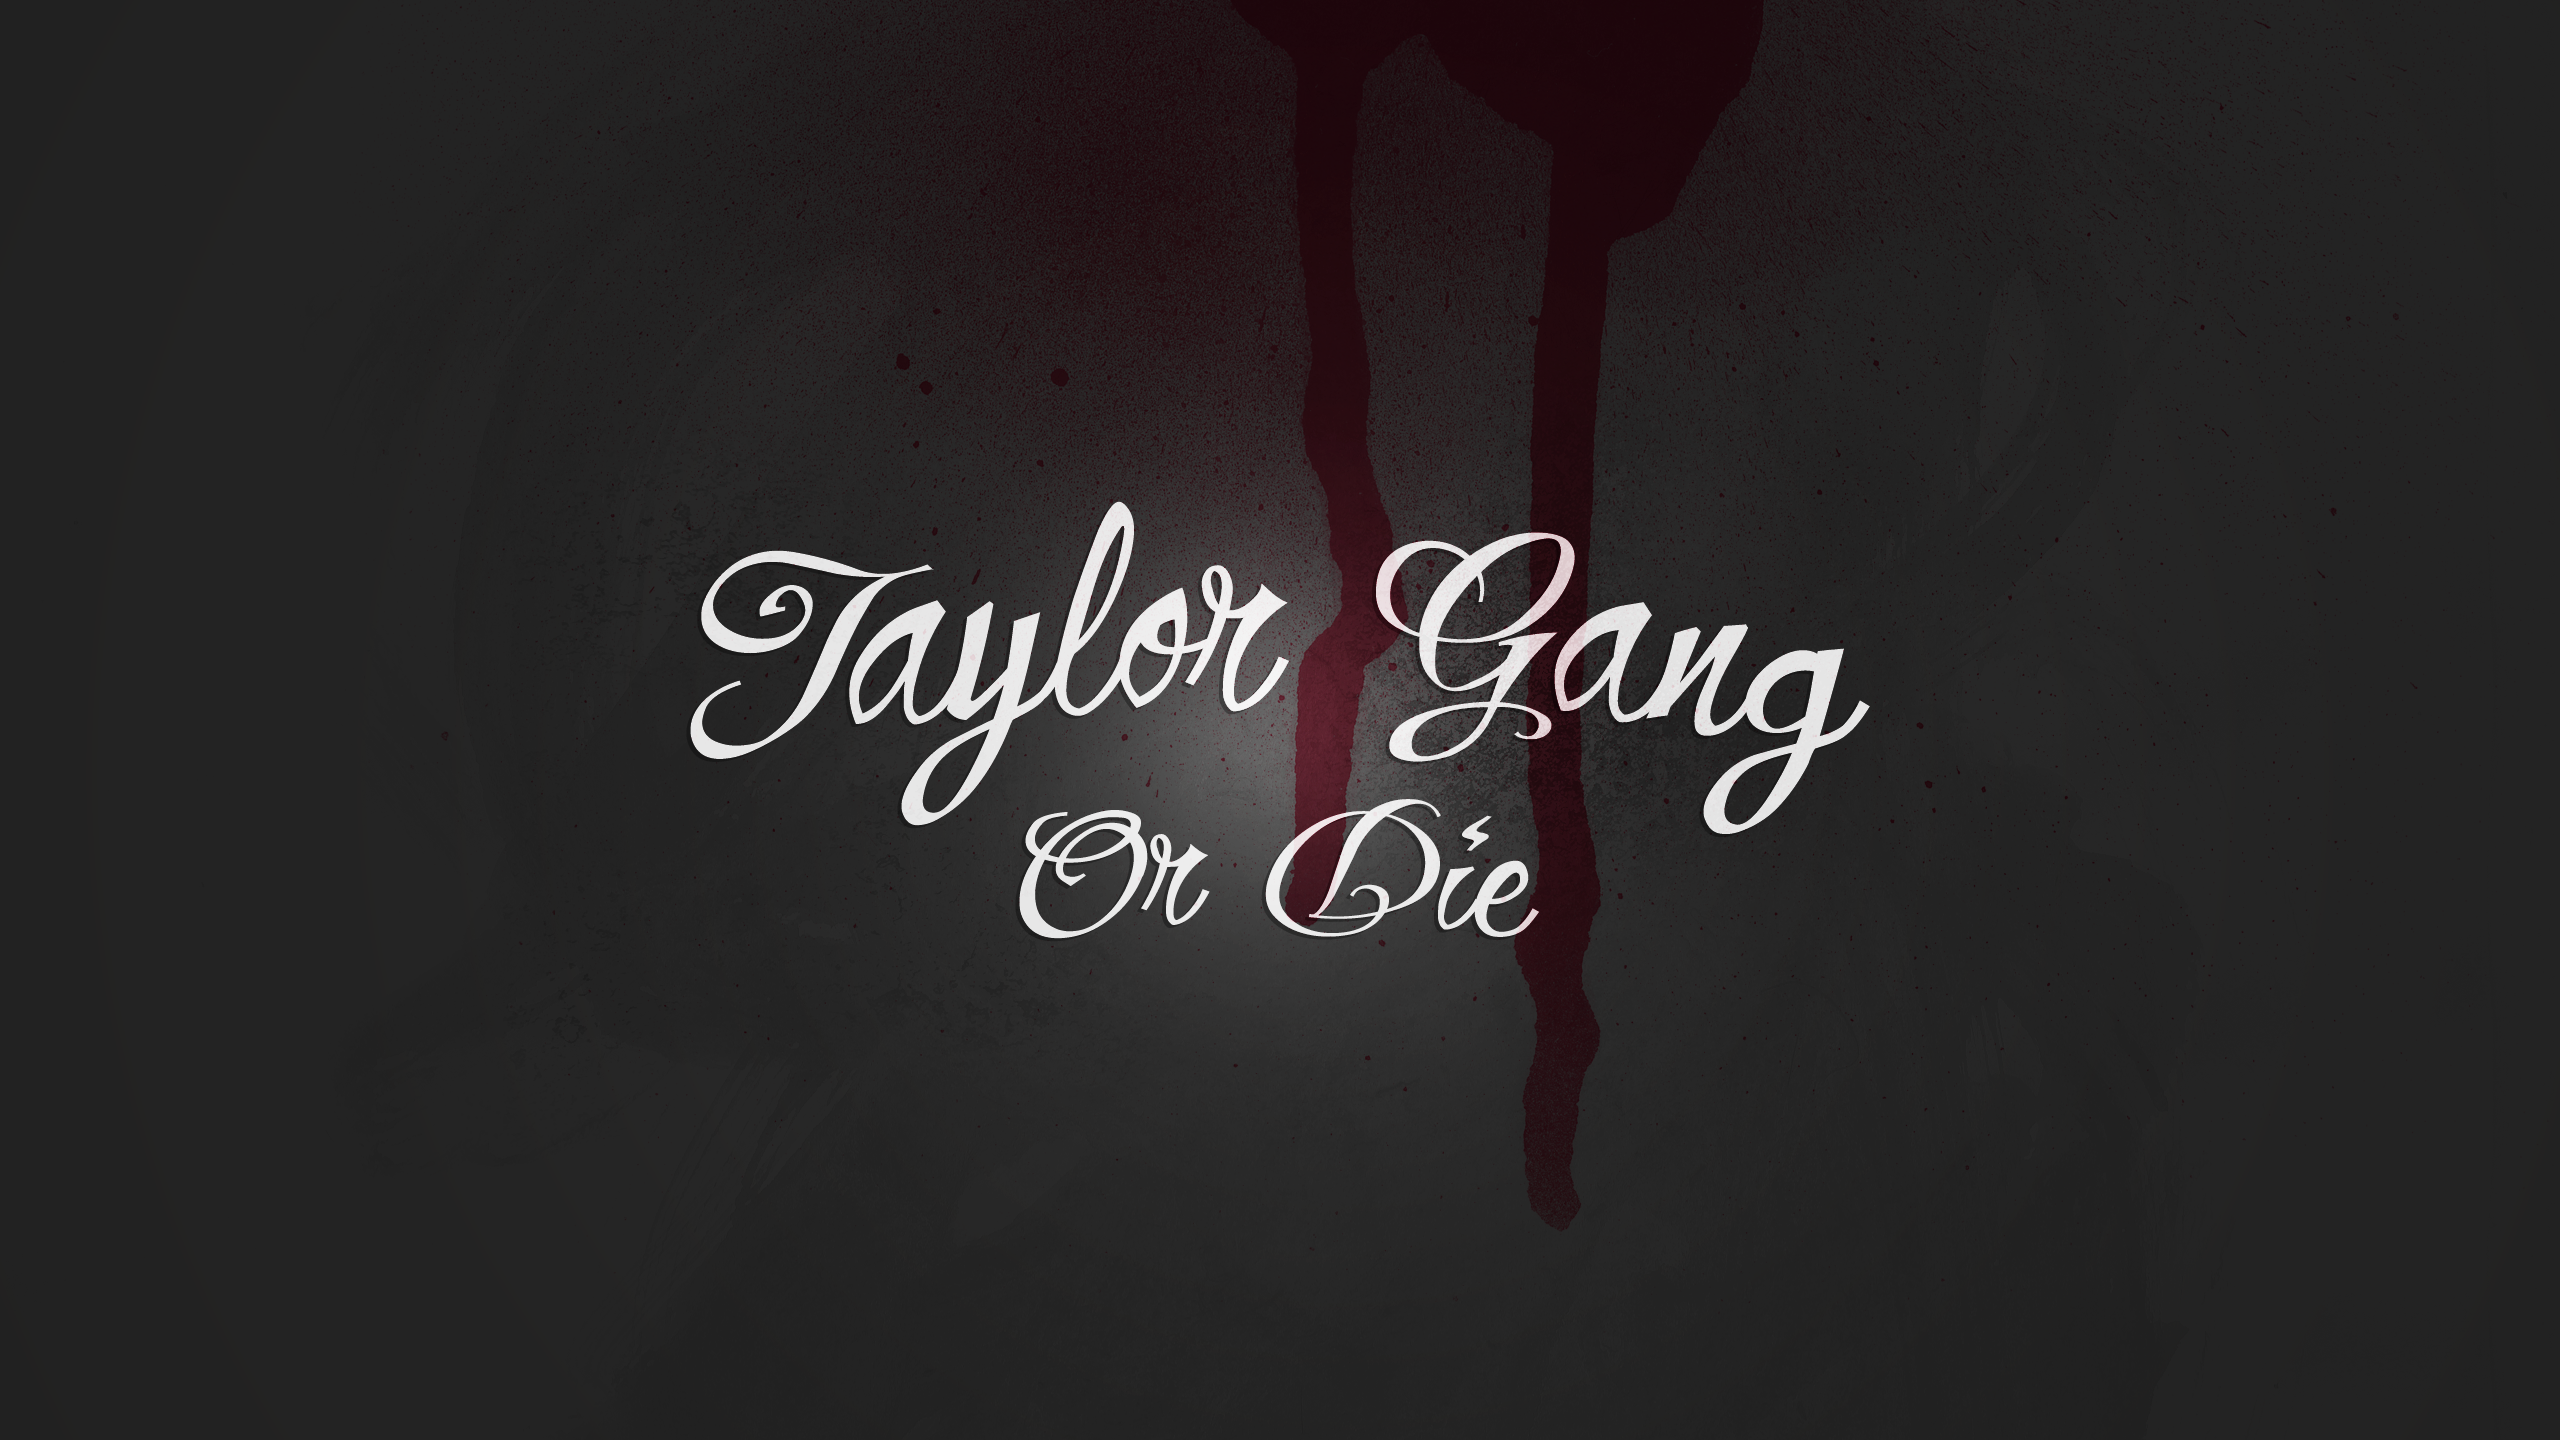 wiz khalifa taylor gang by daniellinthwaite customization wallpaper 2560x1440